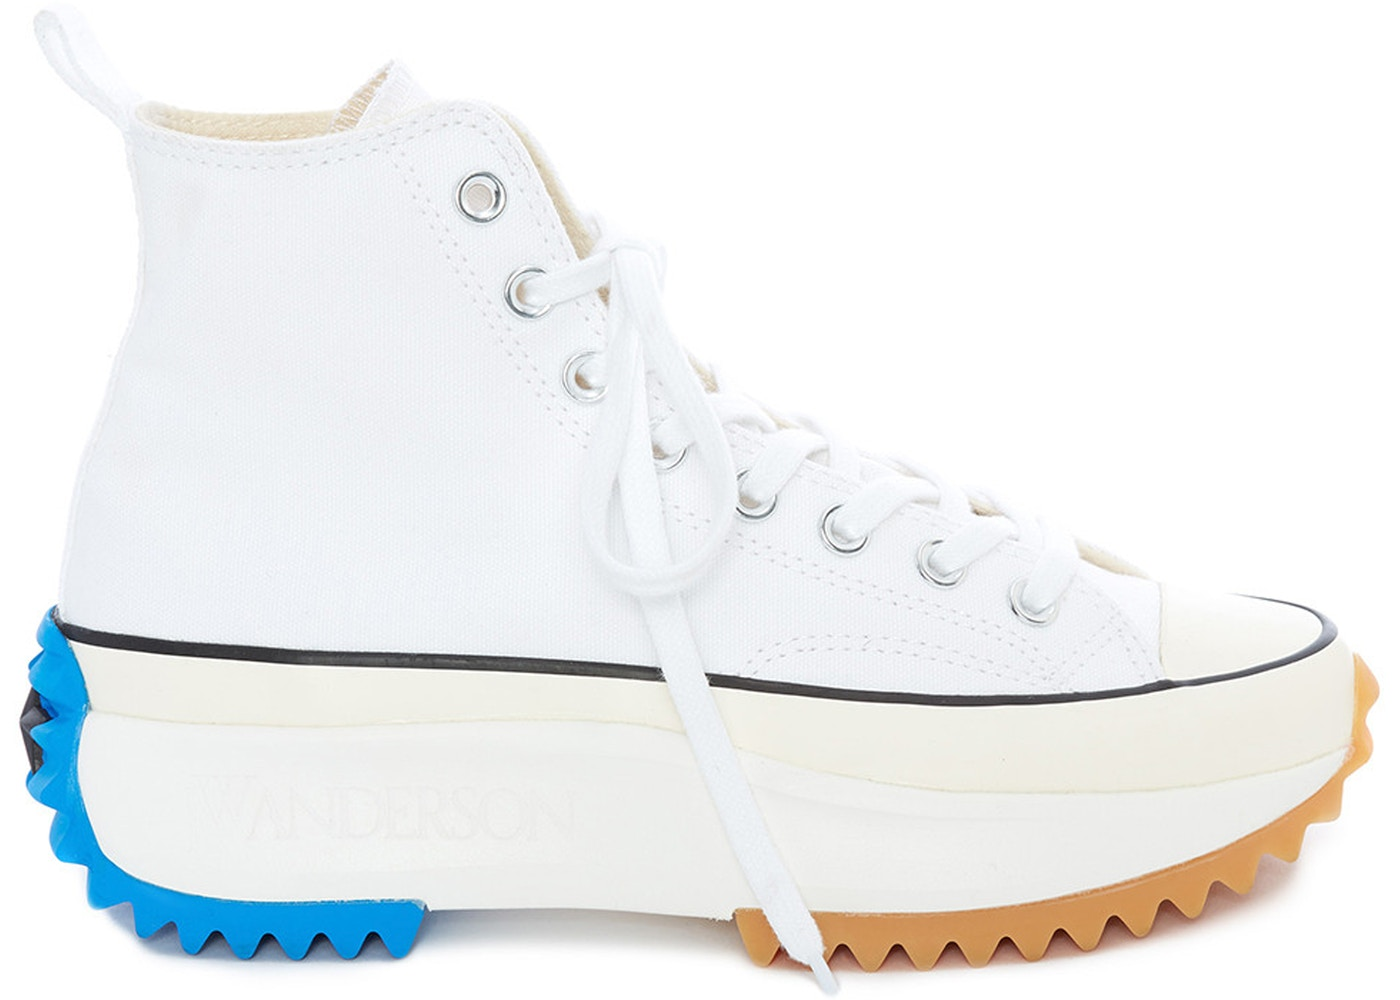 Converse Run Star Hike JW Anderson White